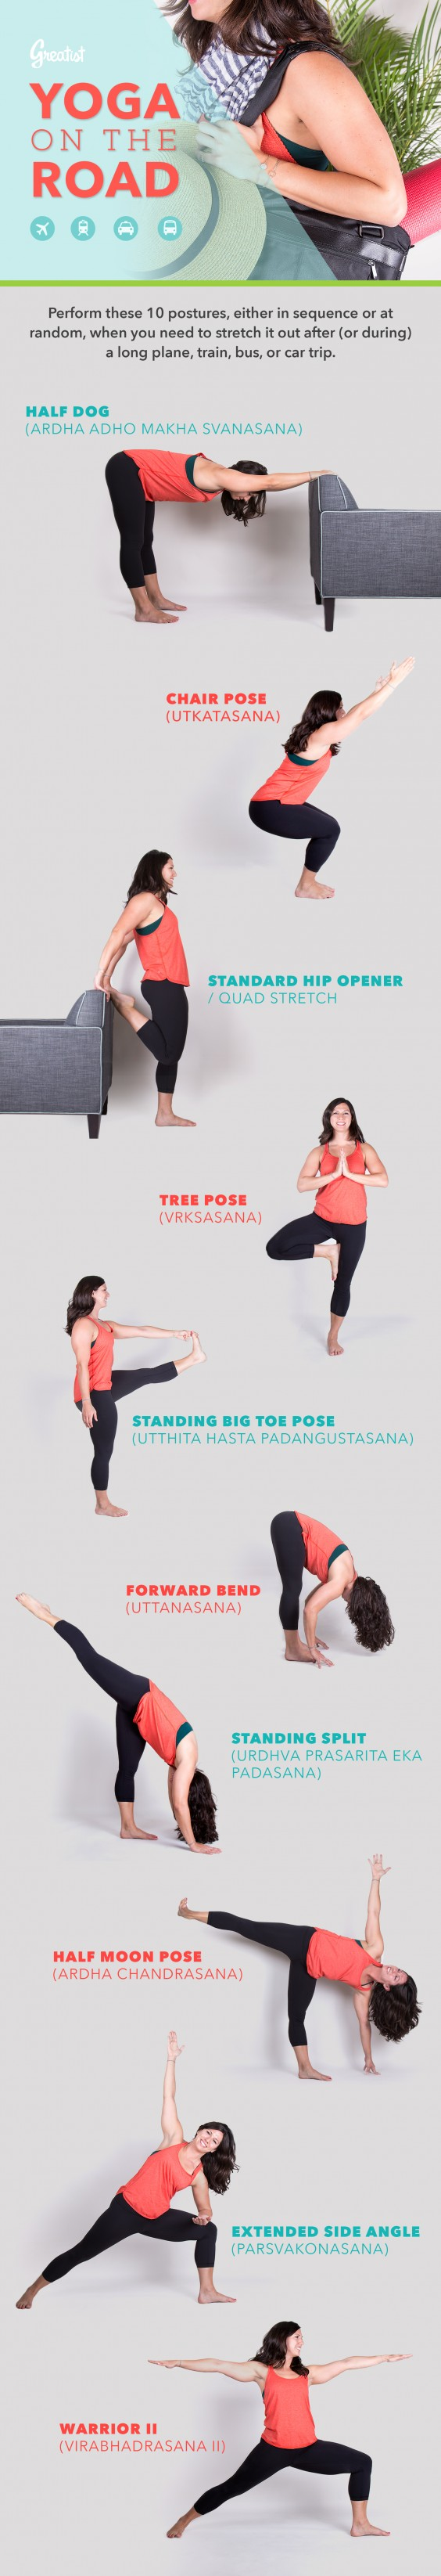 Yoga on the Road Graphic